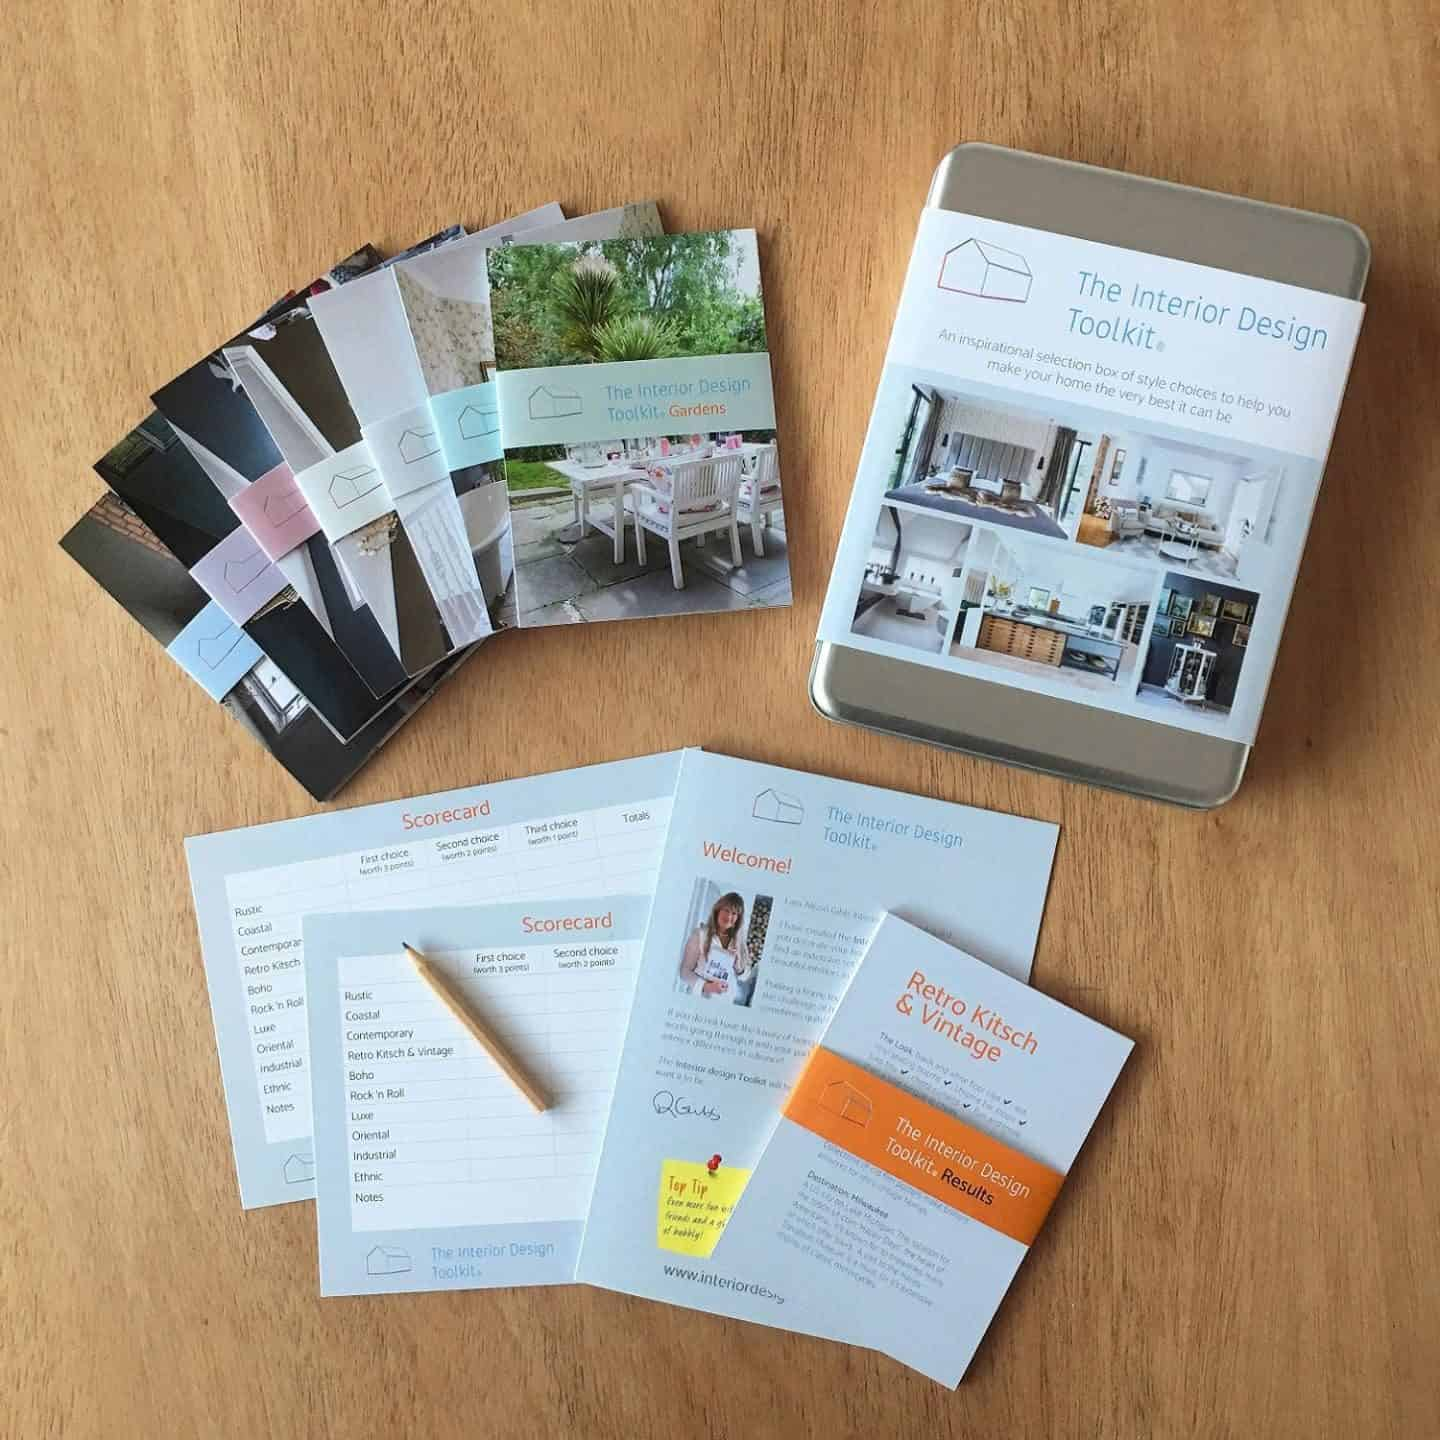 Alison Gibb - the Interior Design Toolkit